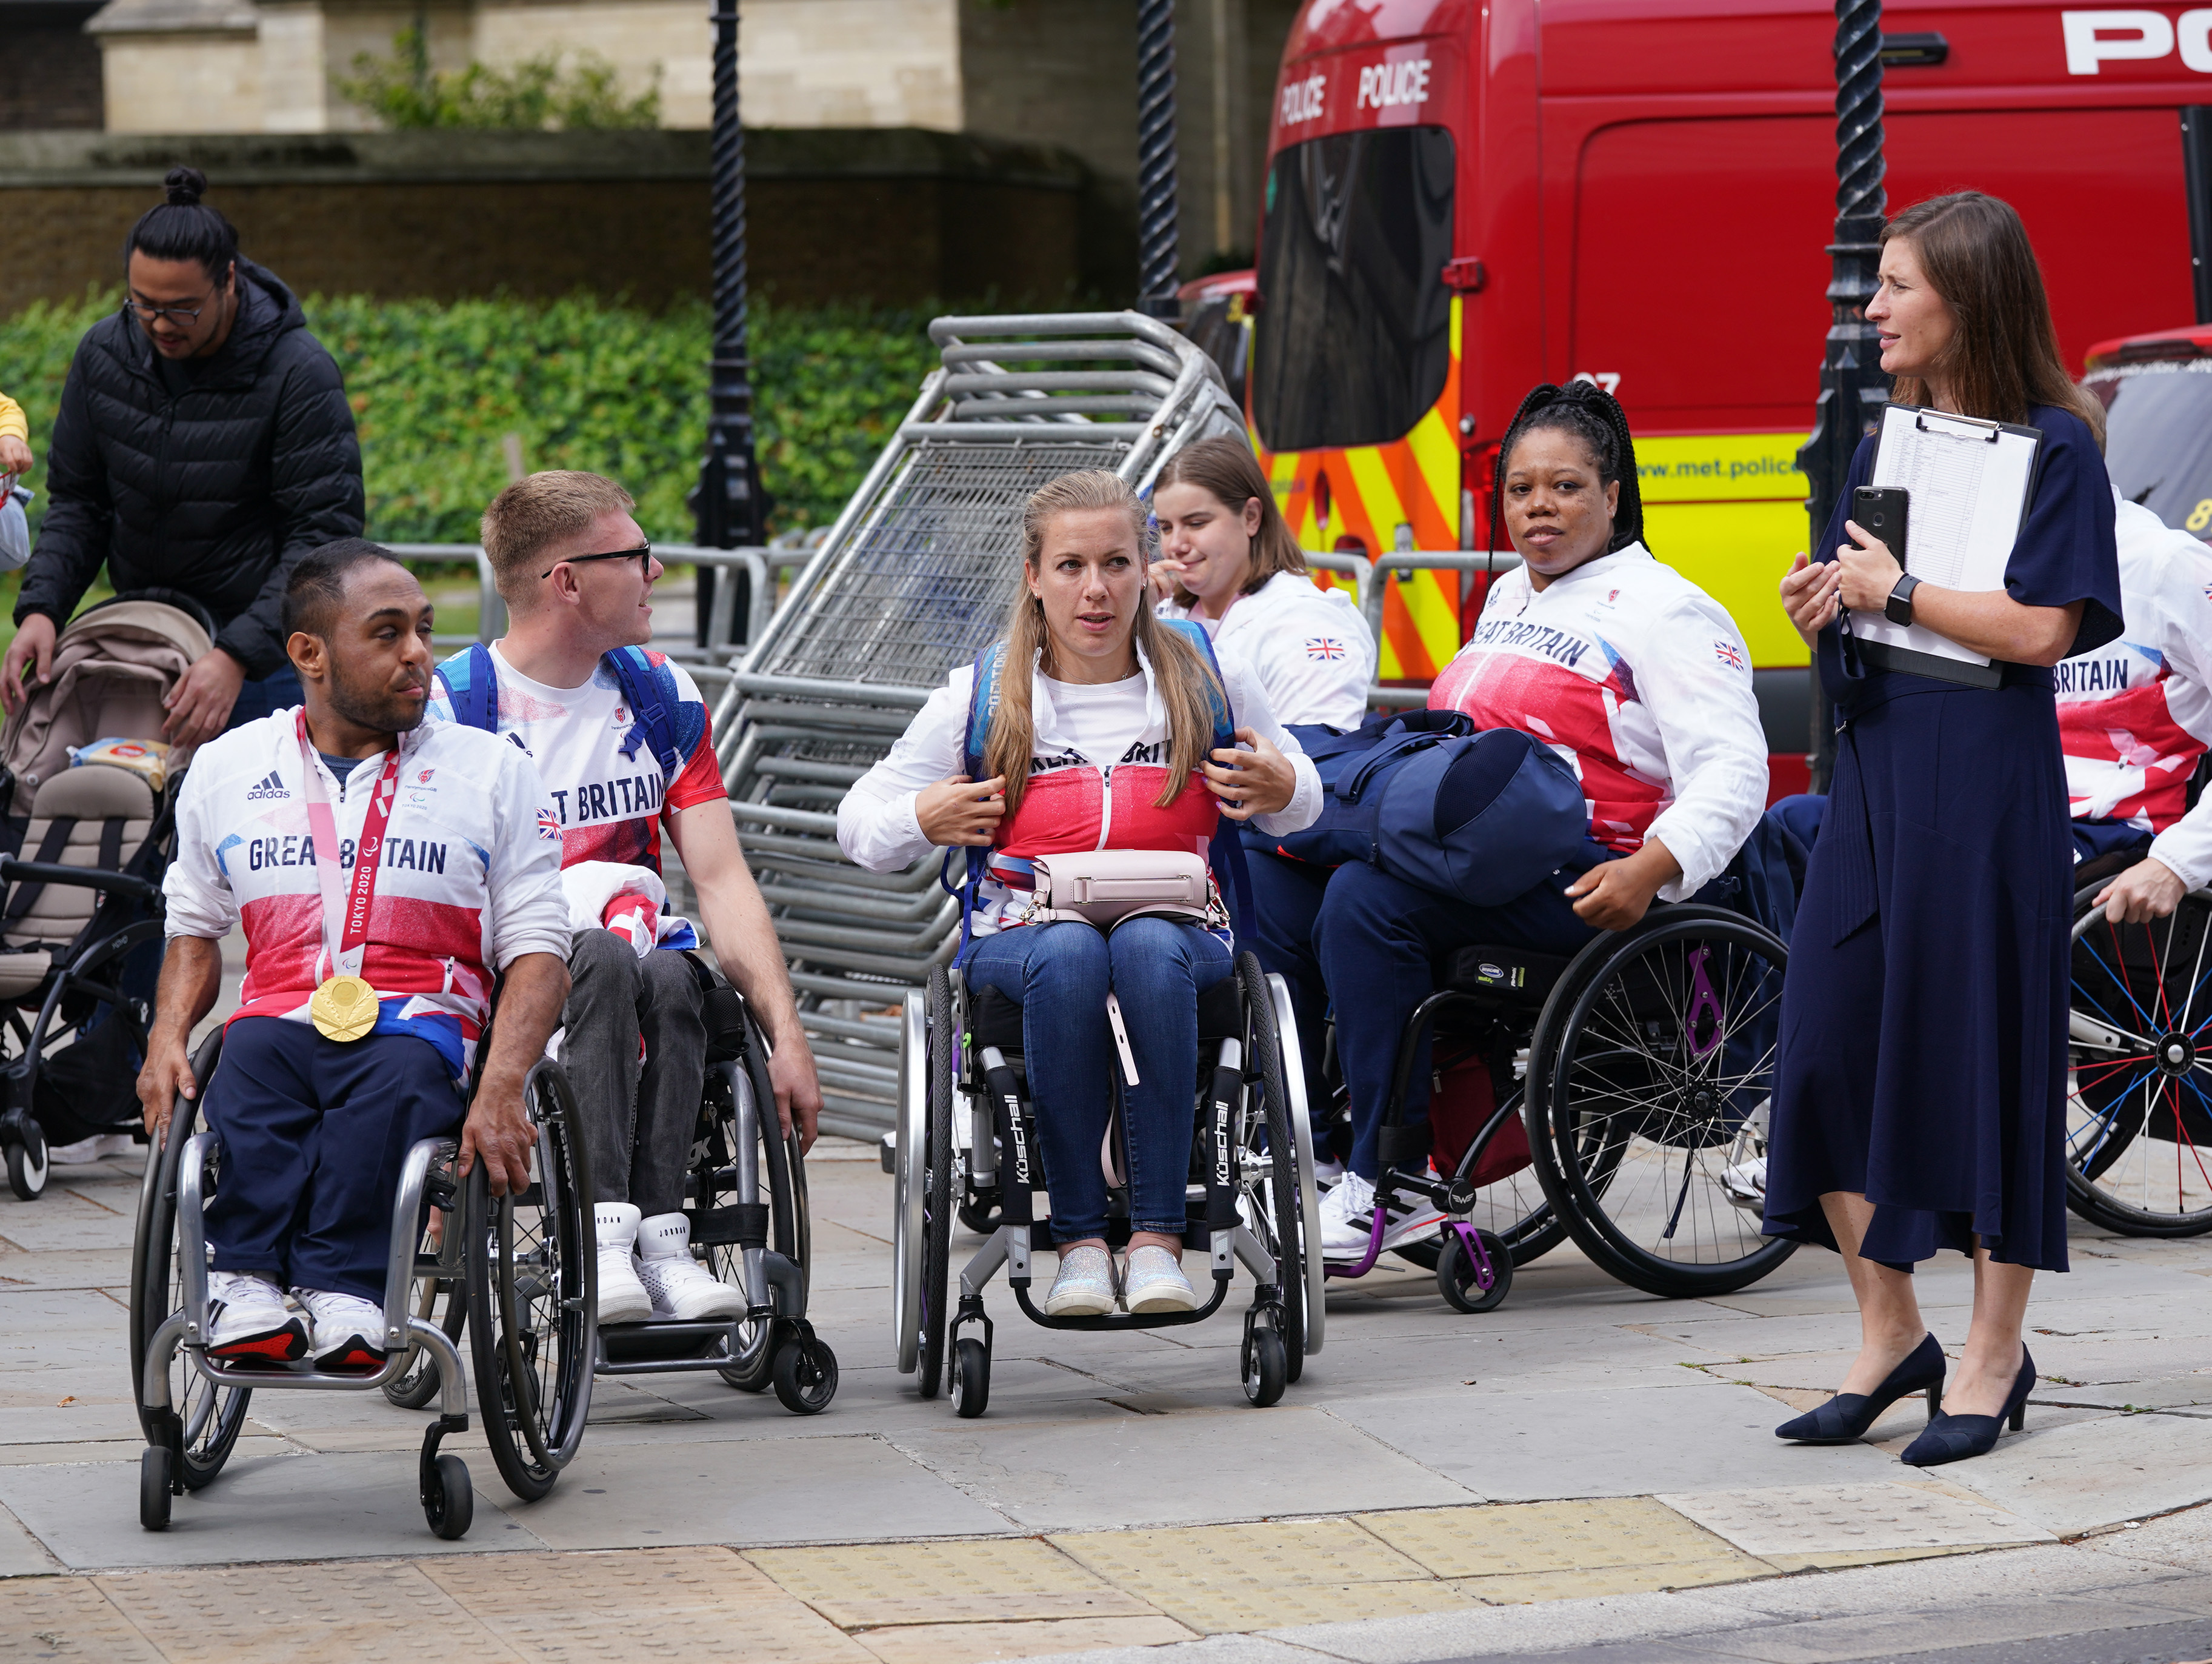 <p>Team GB paralympians arriving at the Houses of Parliament in London. Picture date: Monday September 13, 2021.</p>